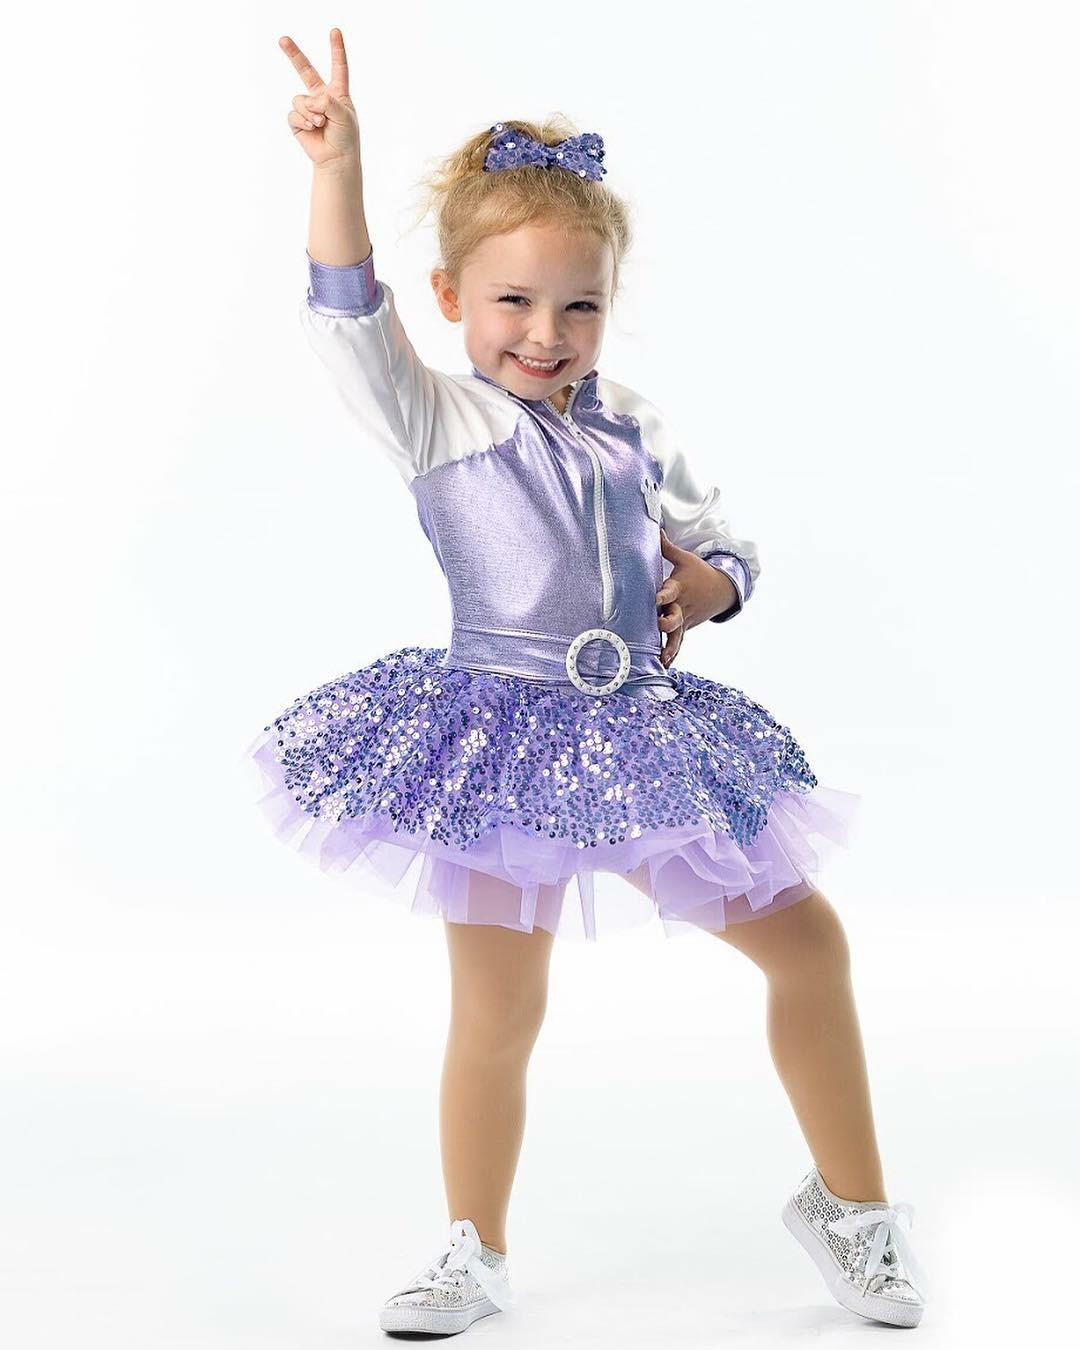 Hippity Hop - Ages 4-6Monday 4:45-5:30Tuesday 3:30-4:15